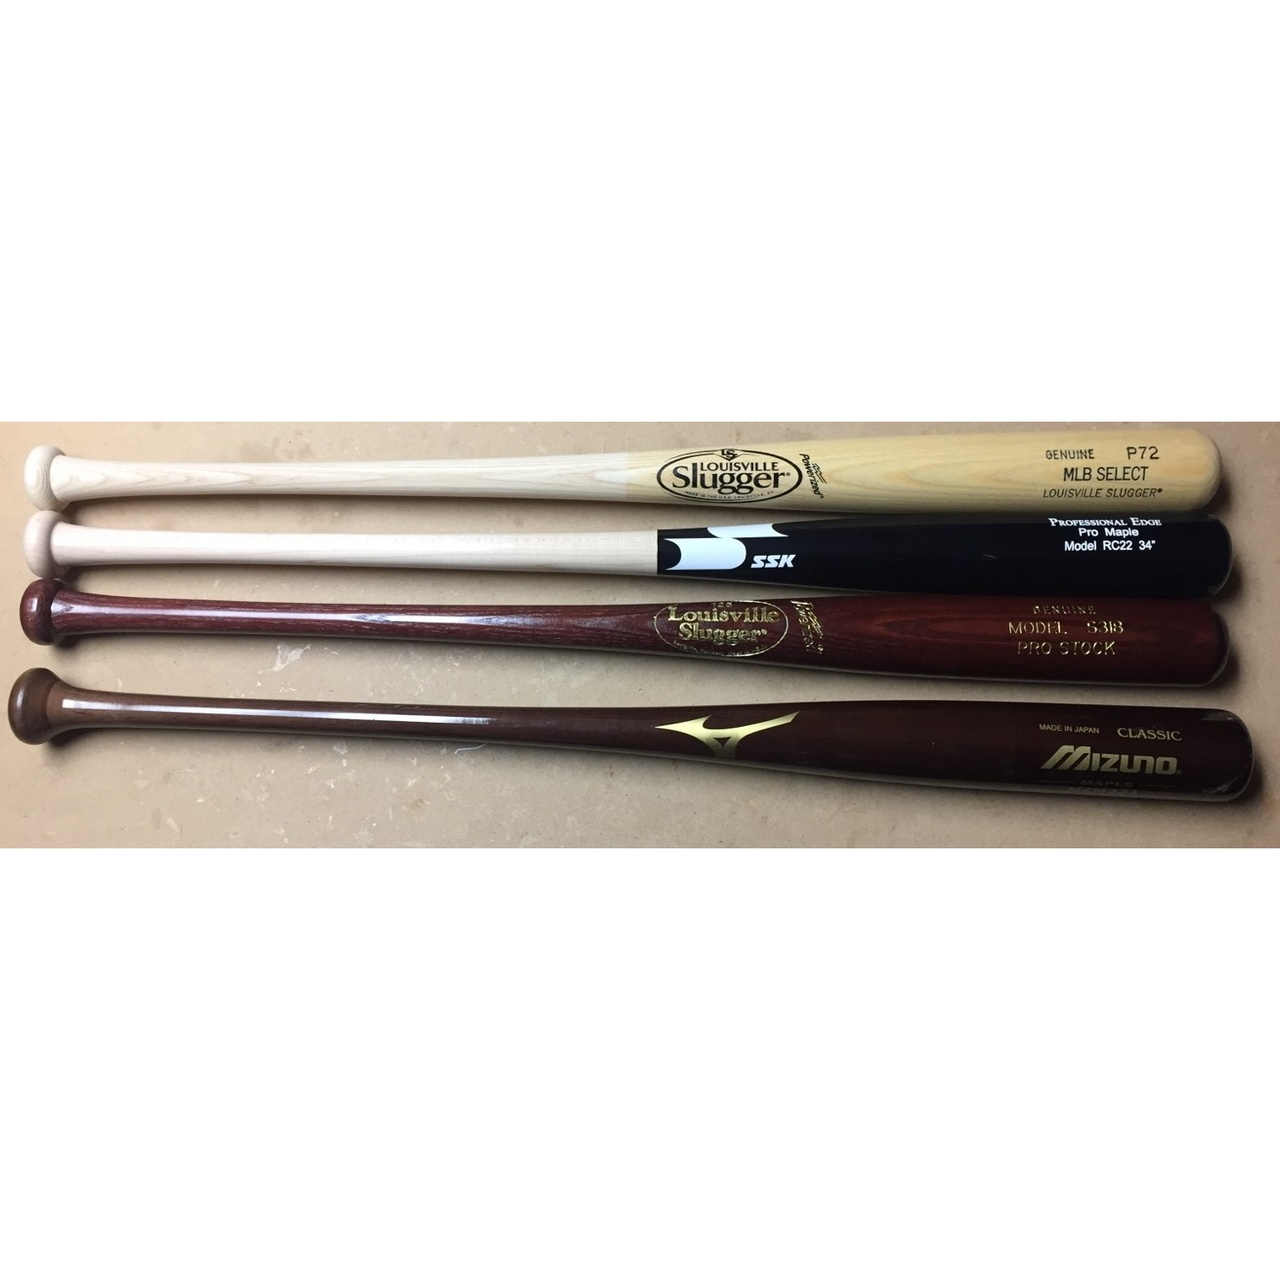 louisville-slugger-wood-bat-pack-34-inch-4-bats BATPACK-0004 Louisville  <p>SSK Pro Maple with small scratch. MLB Select P72. S318 Pro